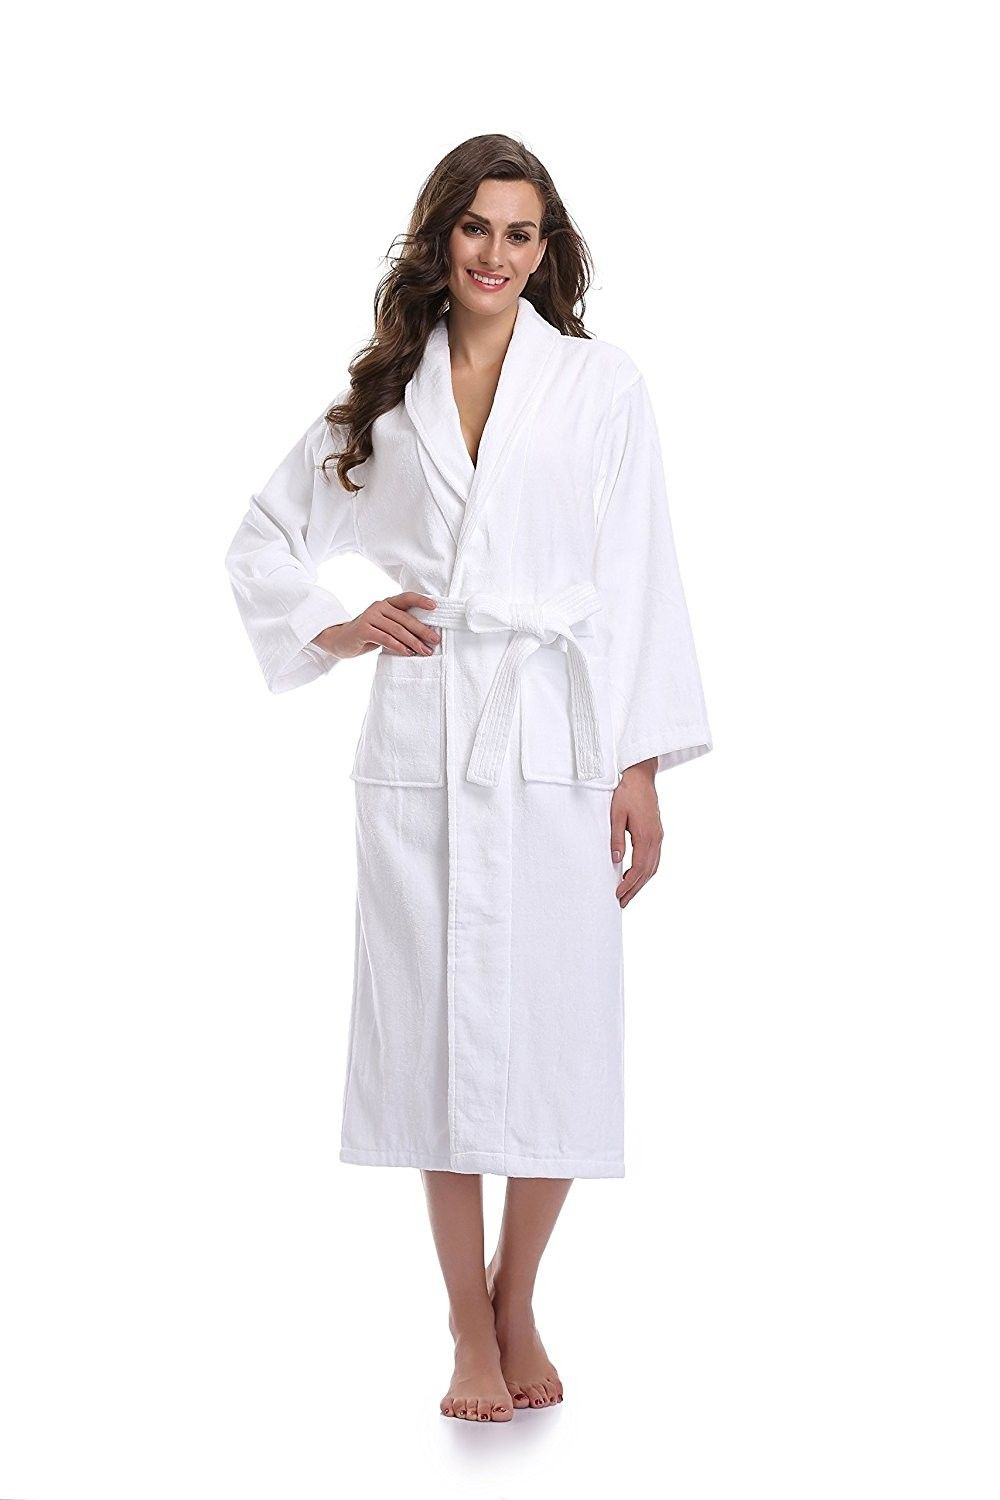 af2118fbed7d Women s Terry Cotton Bathrobe Towel Cloth Robe - White - CB12NTWNUKJ ...